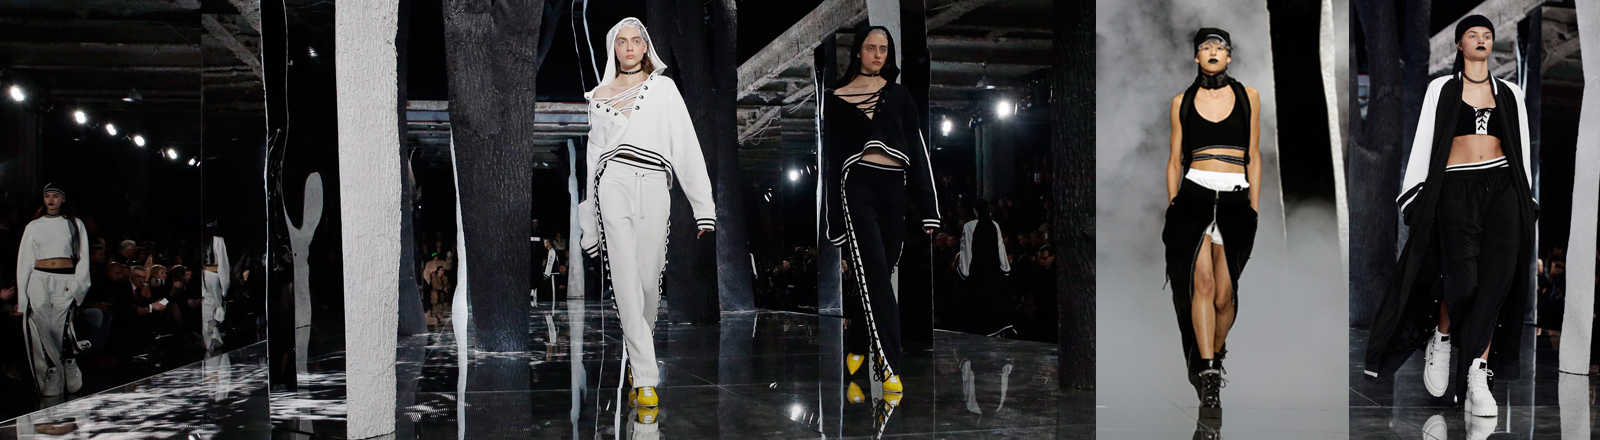 Rihannas Modekollektion auf der Fashion Week in New York